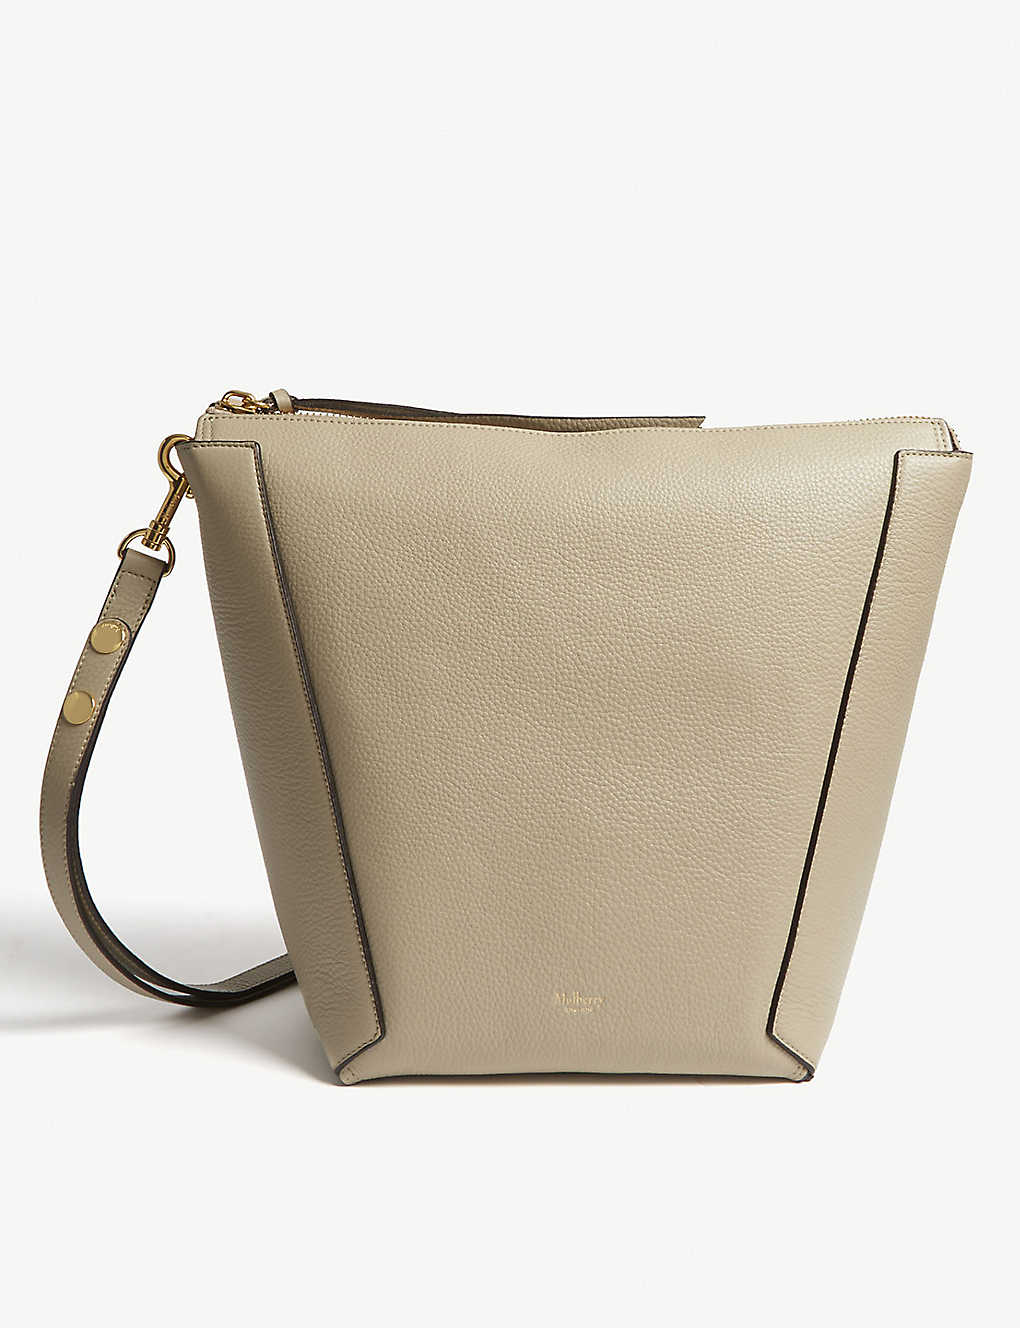 MULBERRY - Camden grained leather hobo bag  72b70c31ea5a4